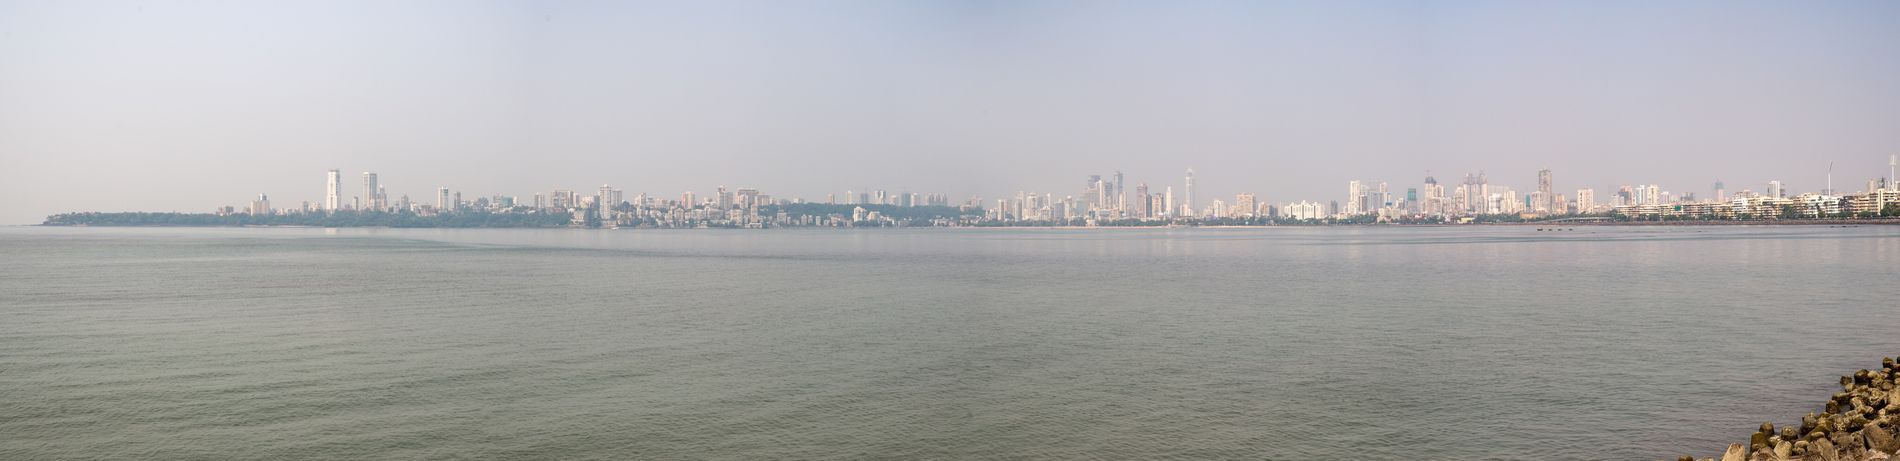 Mumbai Architecture City Cityscape Urban Skyline Travel Destinations Waterfront Outdoors Water Day Travel Nikon Nikon Df Panorama Panoramic Photography Panoramic Skyline Nikonphotography